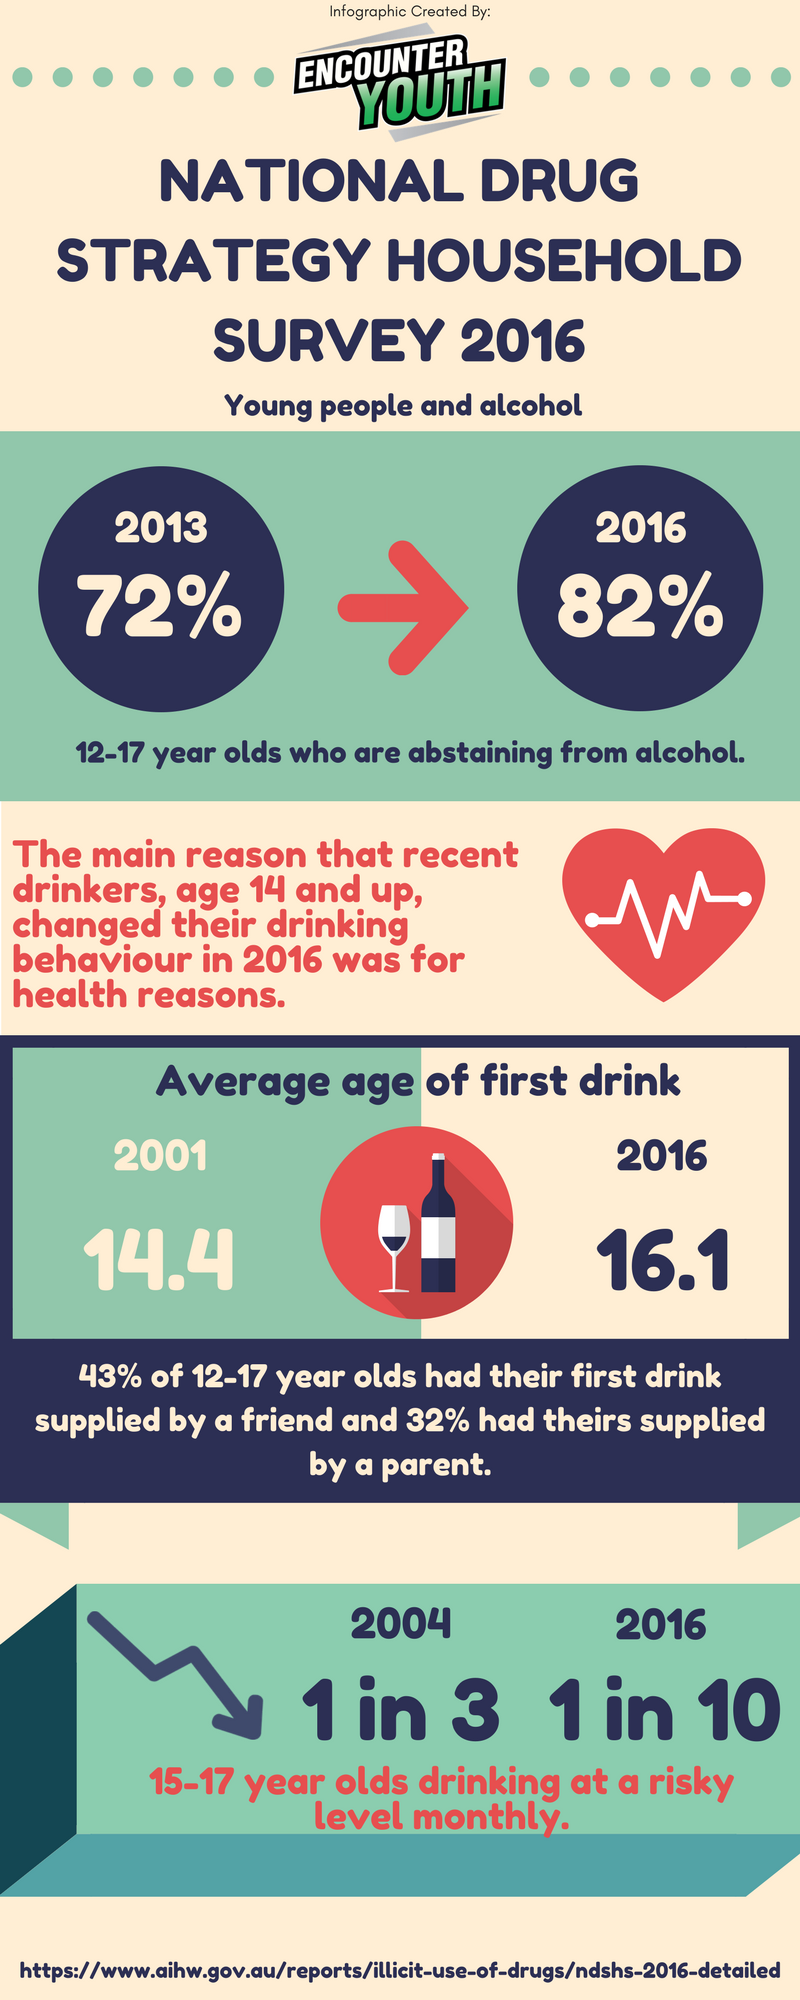 National Drug Strategy Household Survey 2016, Infographic No. 1, Young People